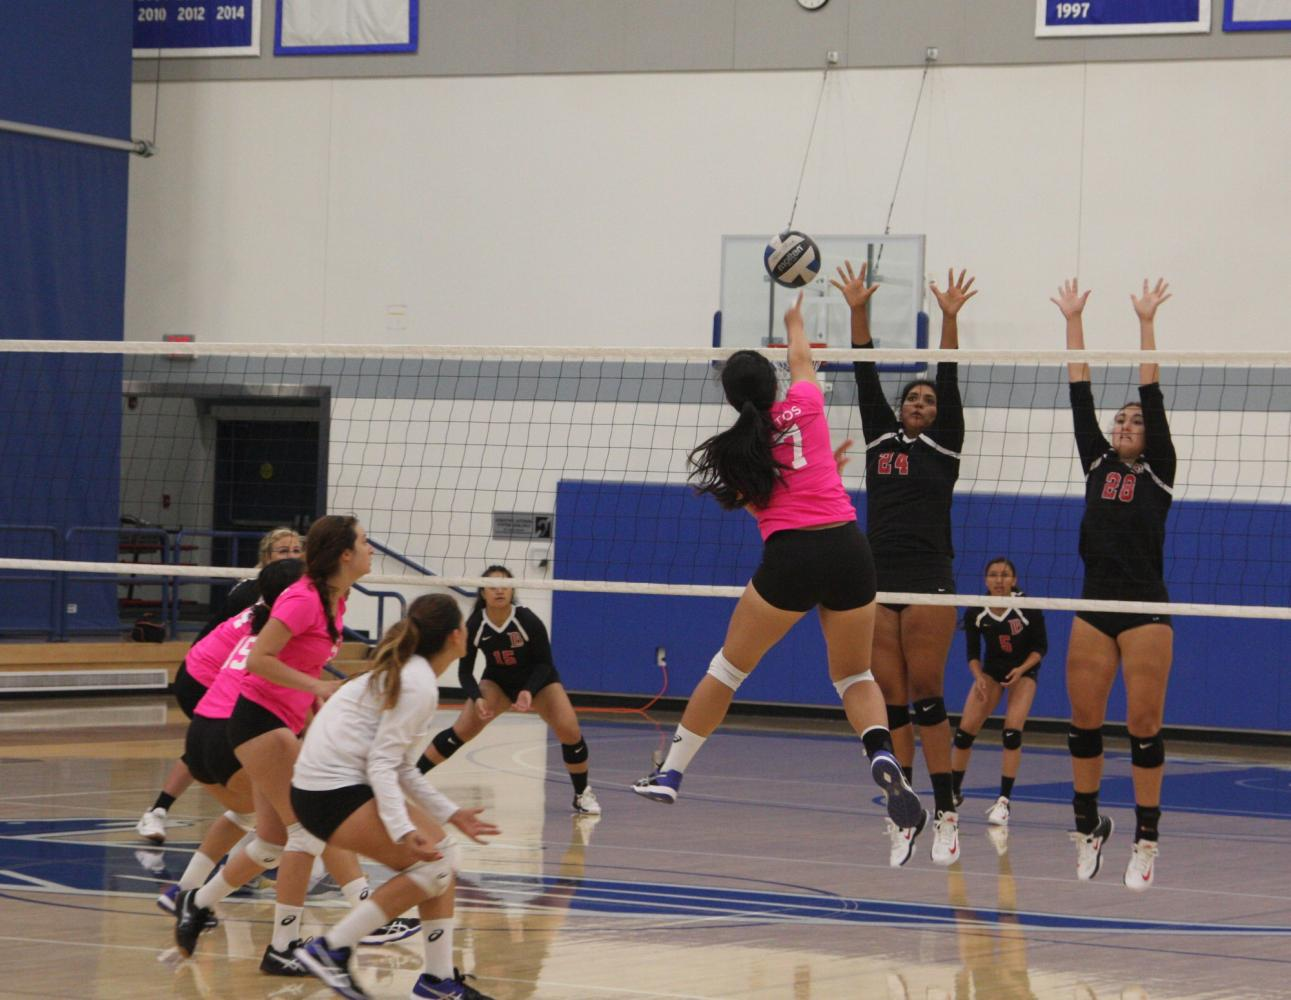 Falcons' No. 17 Jody Suski spiking the ball against Long Beach. The Falcons lost 3-0. Photo credit: David Jenkins